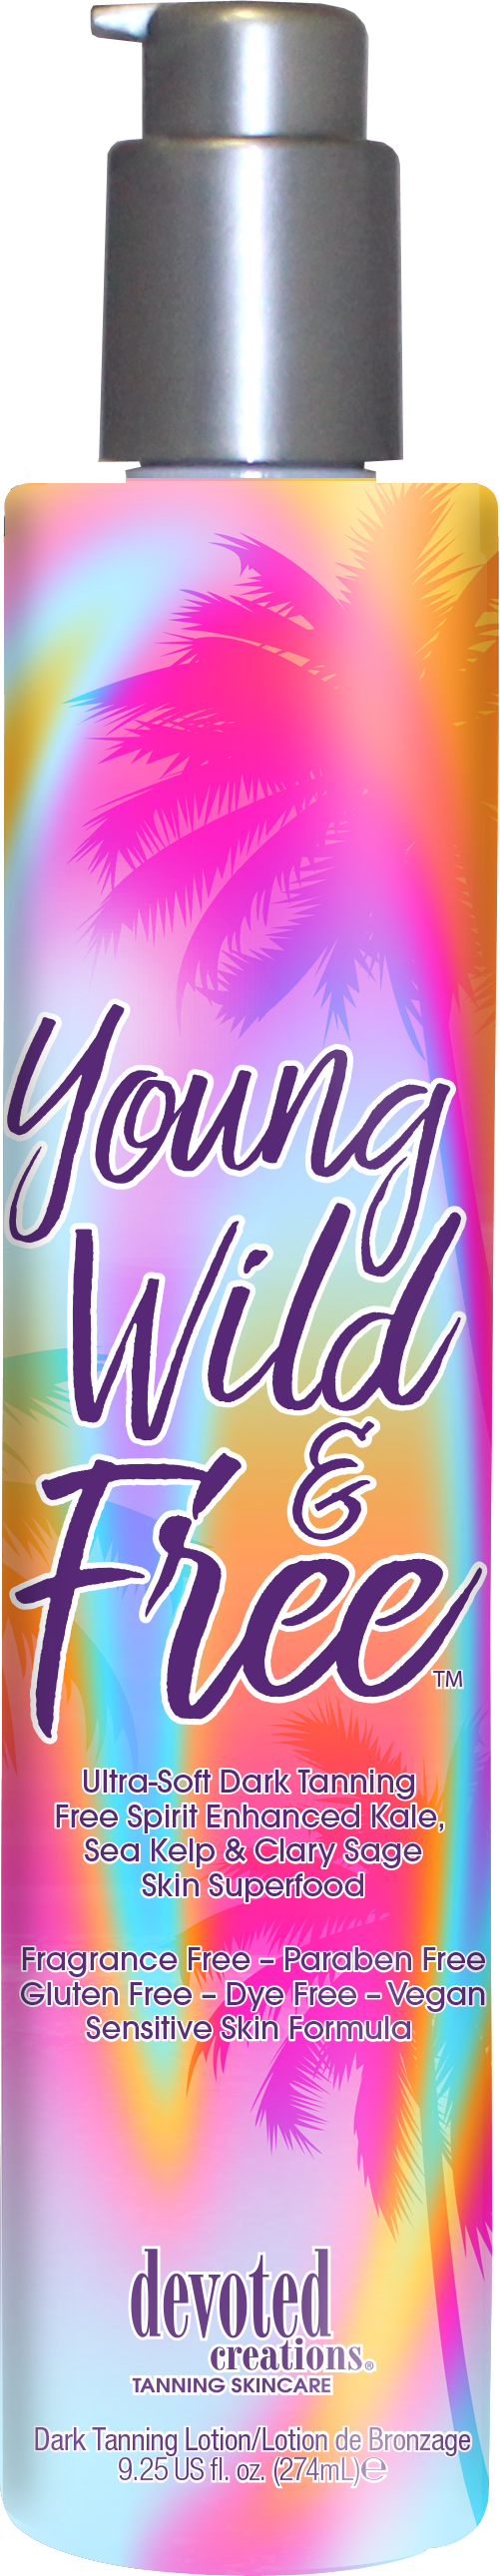 Young, Wild & Free Intensifier